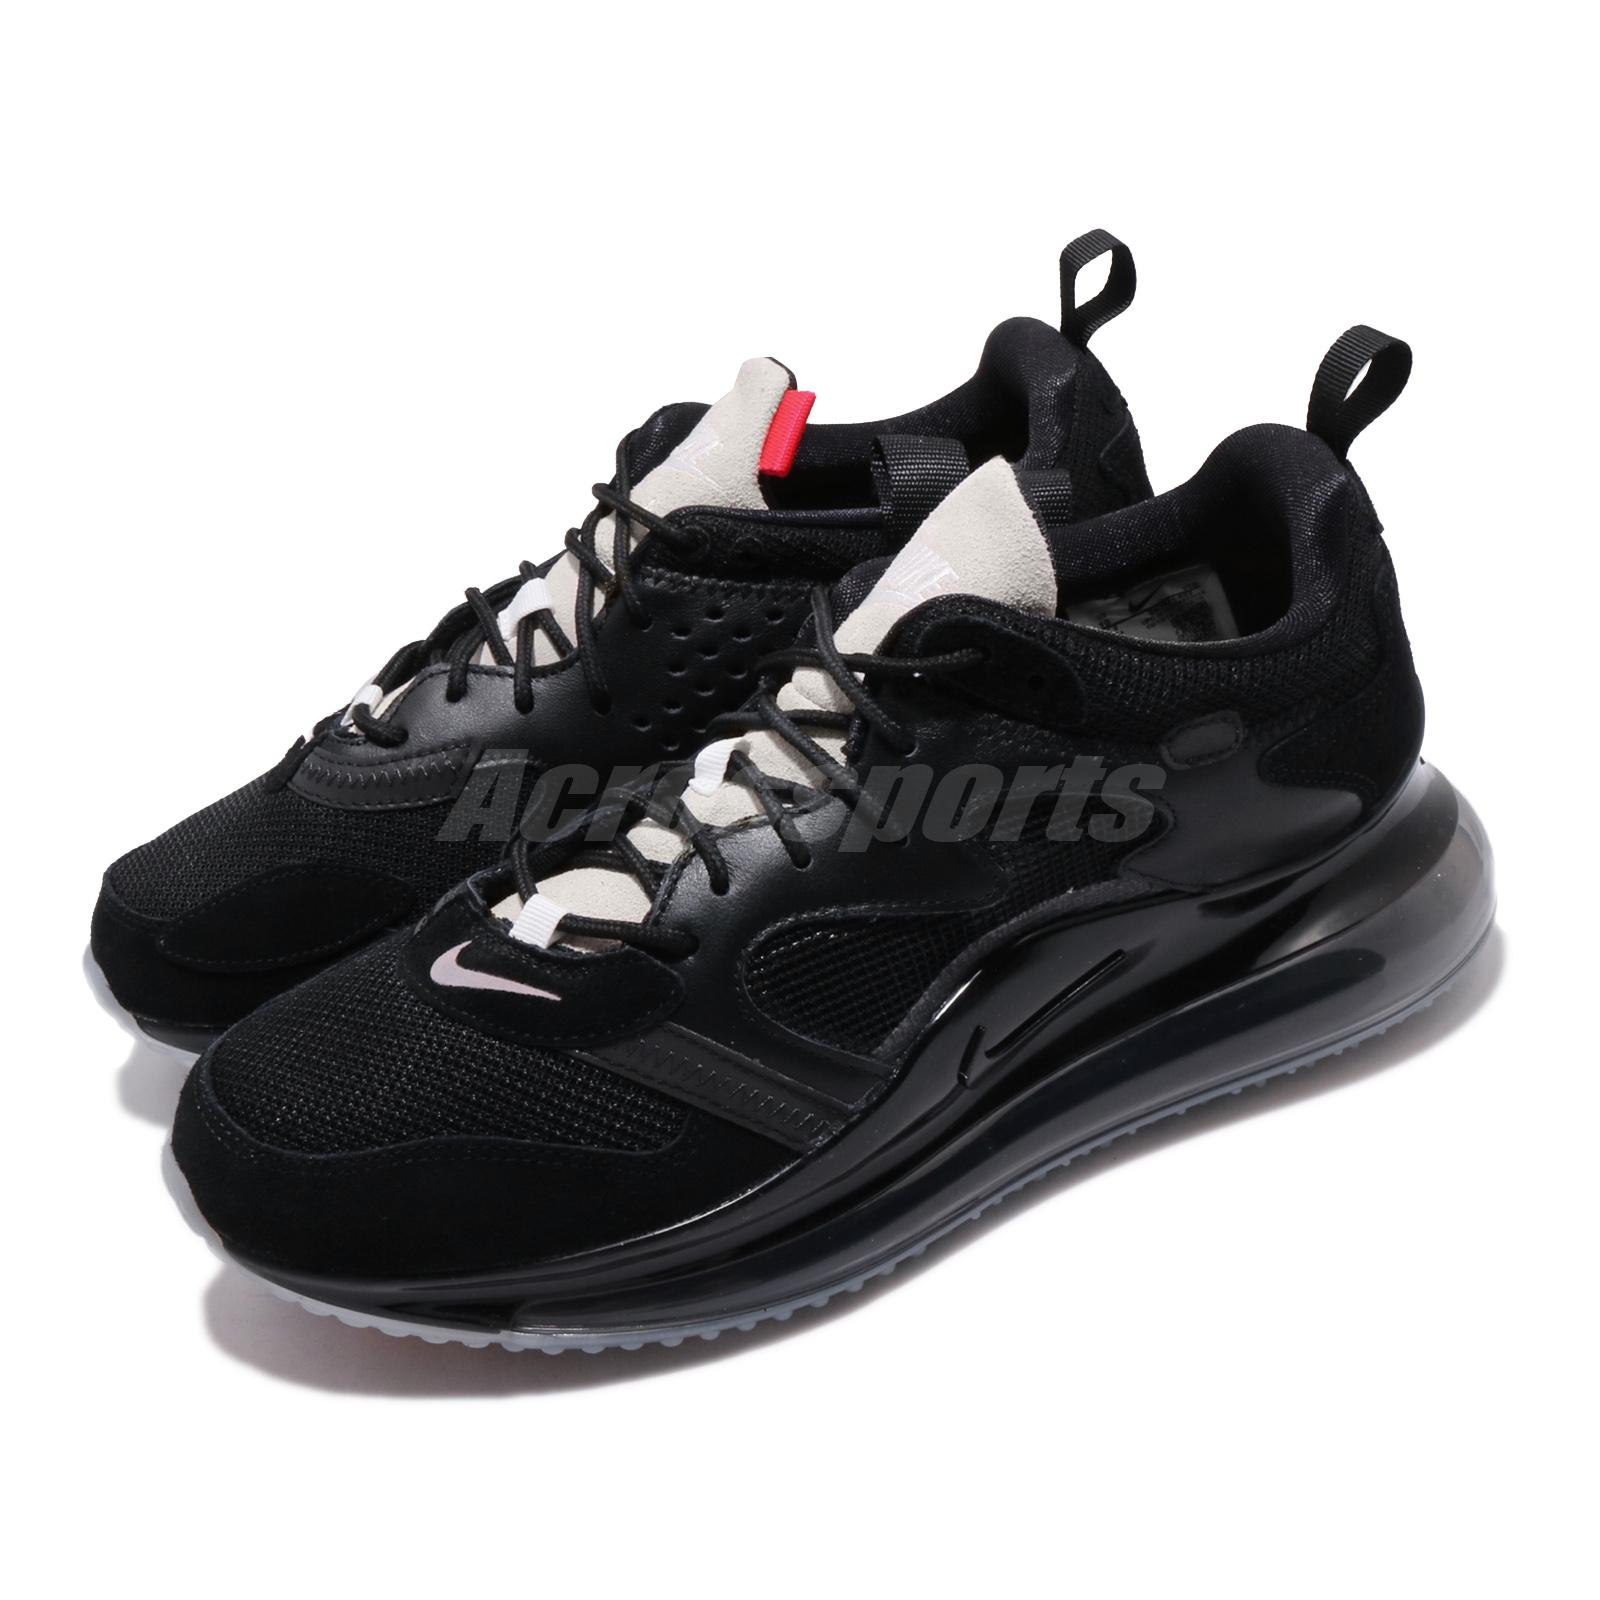 Details about Nike Air Max 720 OBJ Odell Beckham Jr Young King of the Night  Men CK2531-002